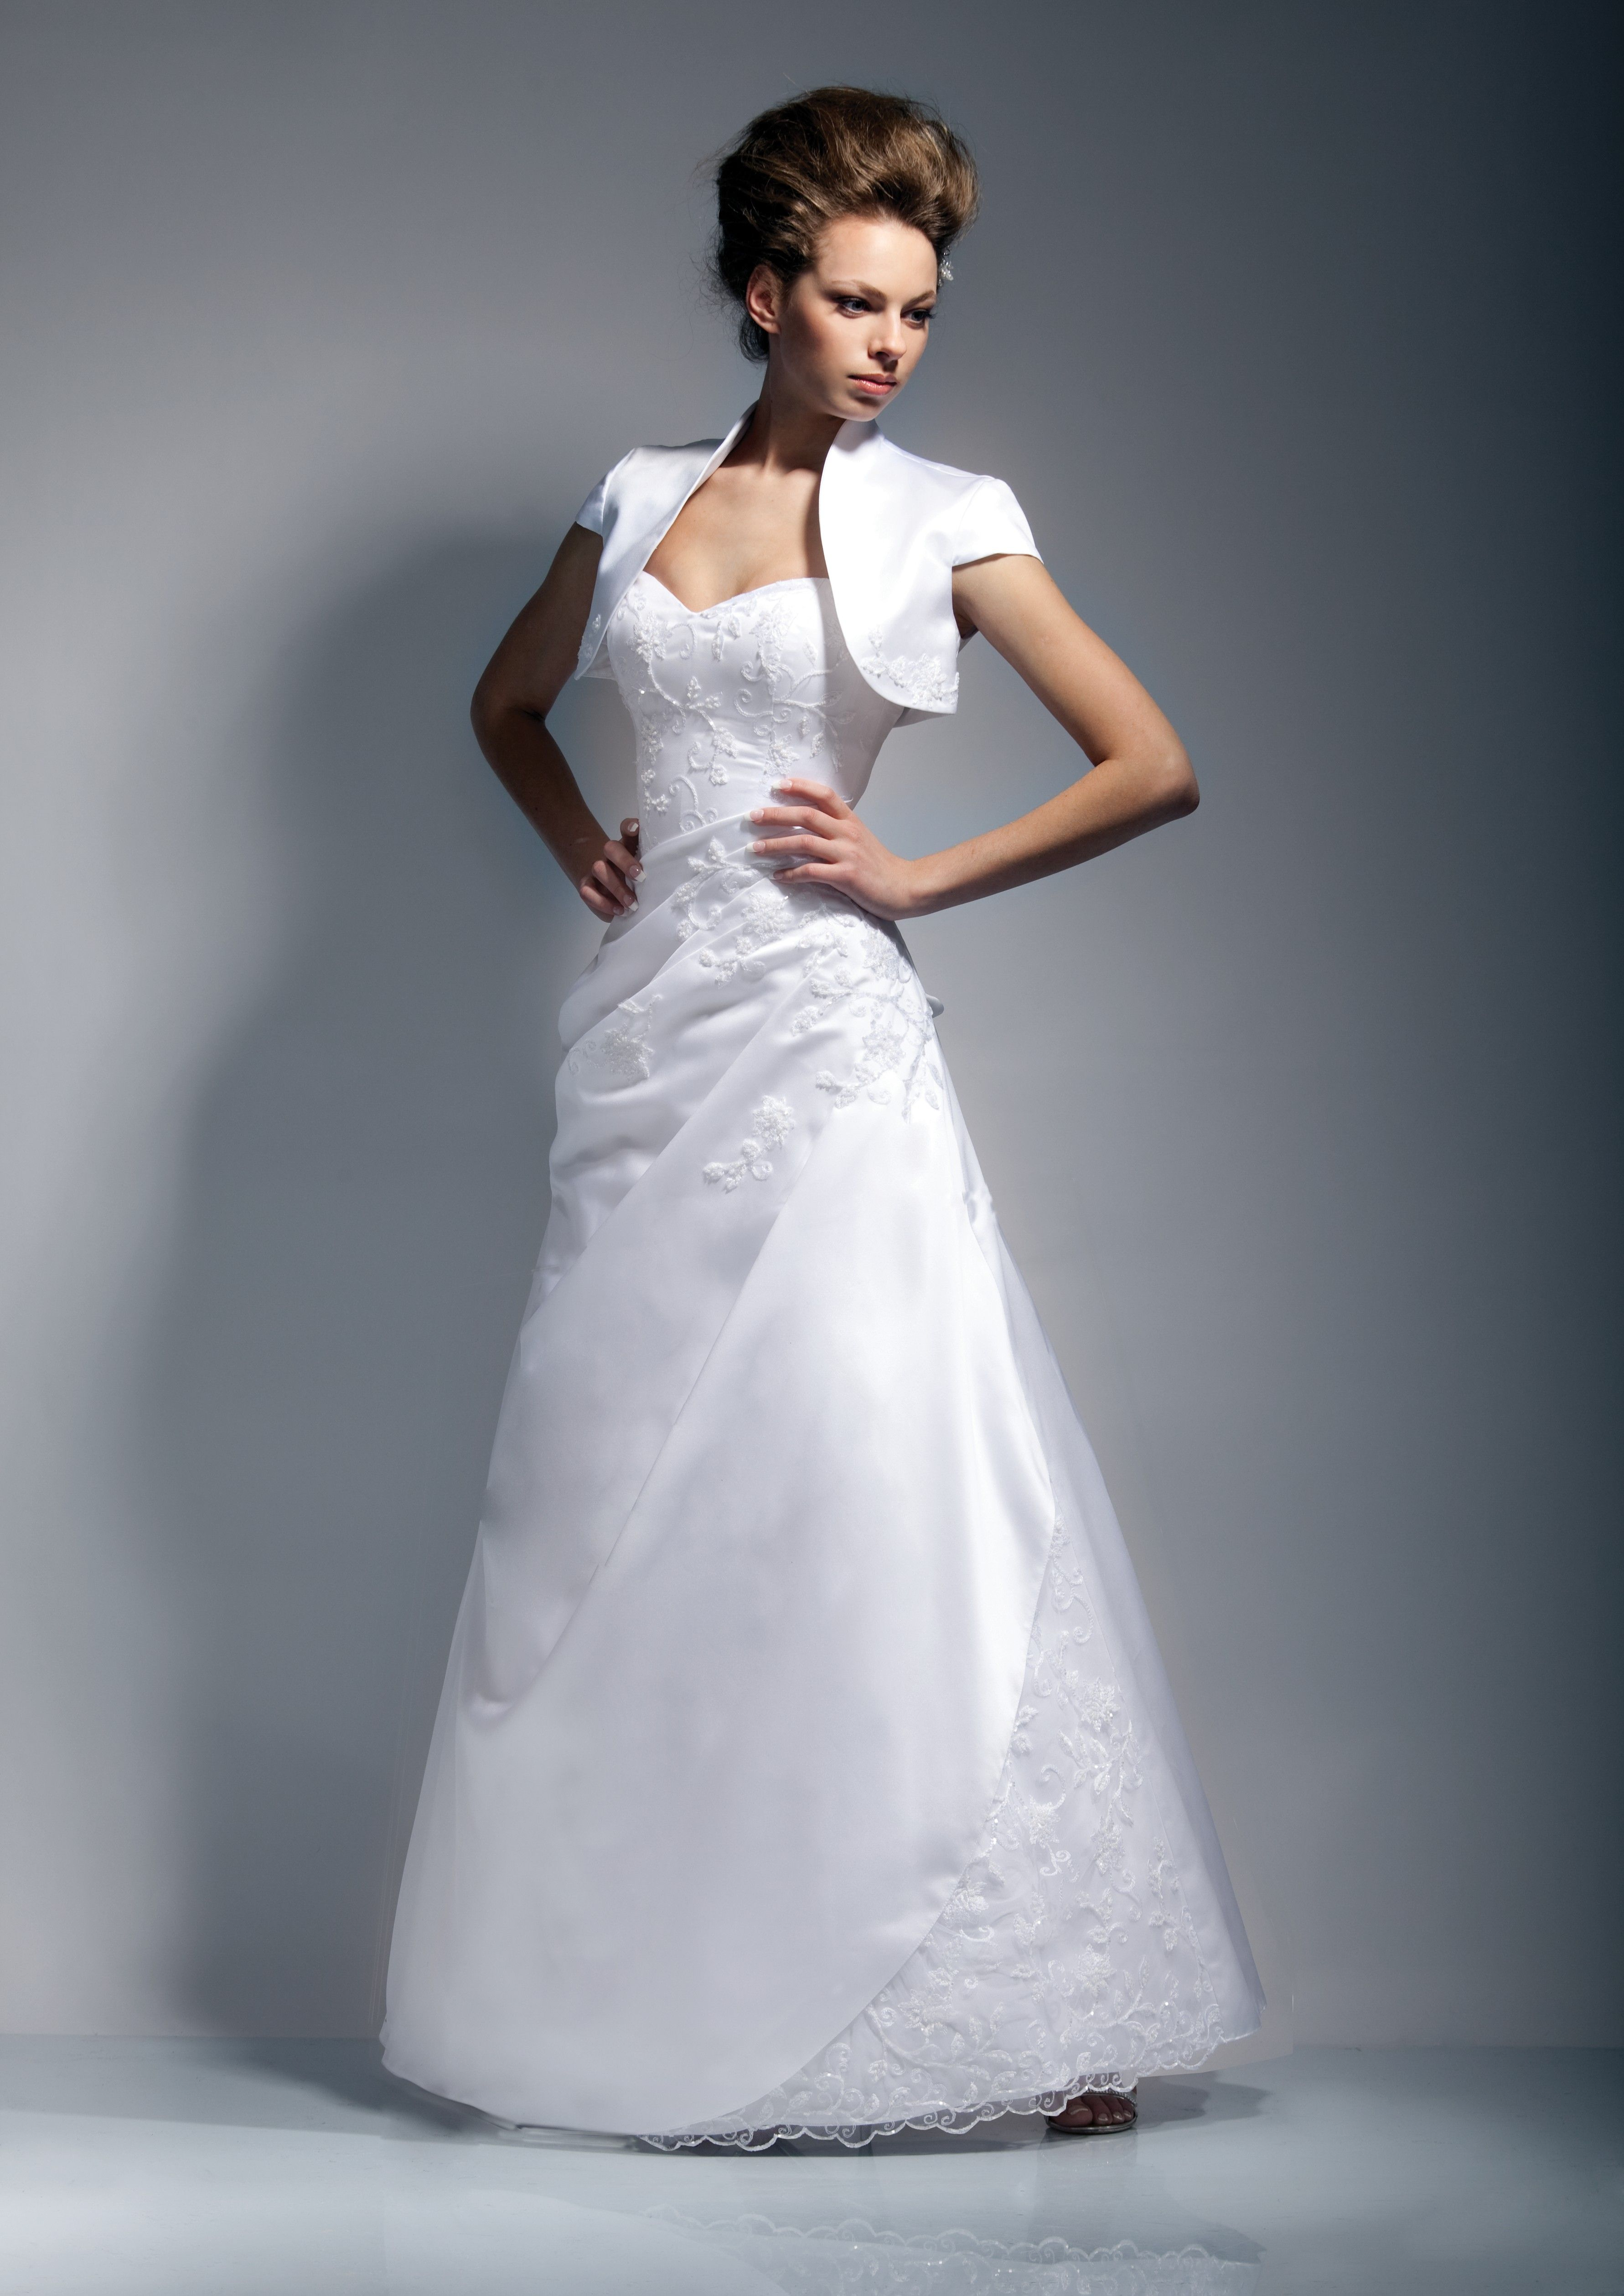 Wedding dresses richmond va  Lady White  will be presented at Elegance in Bridal Show on July